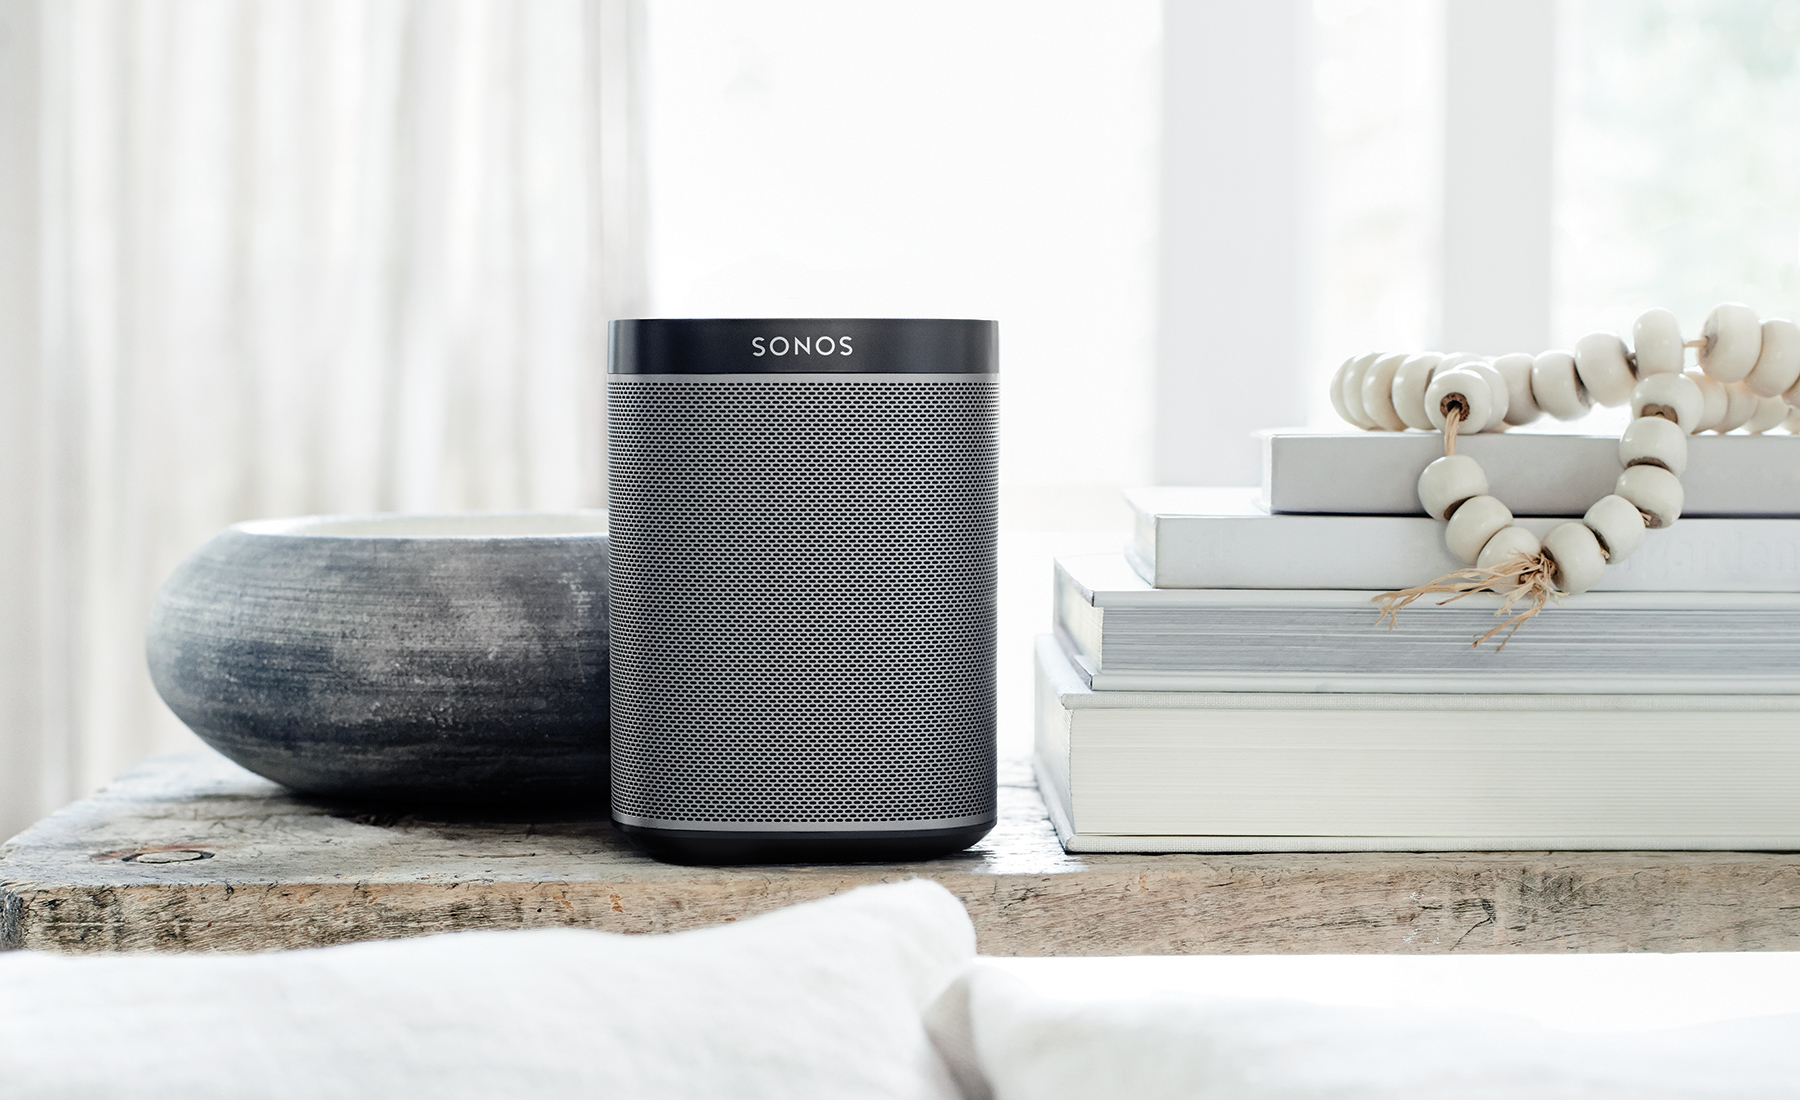 Brexit pound plunge pumps up Sonos speaker prices by up to 25%